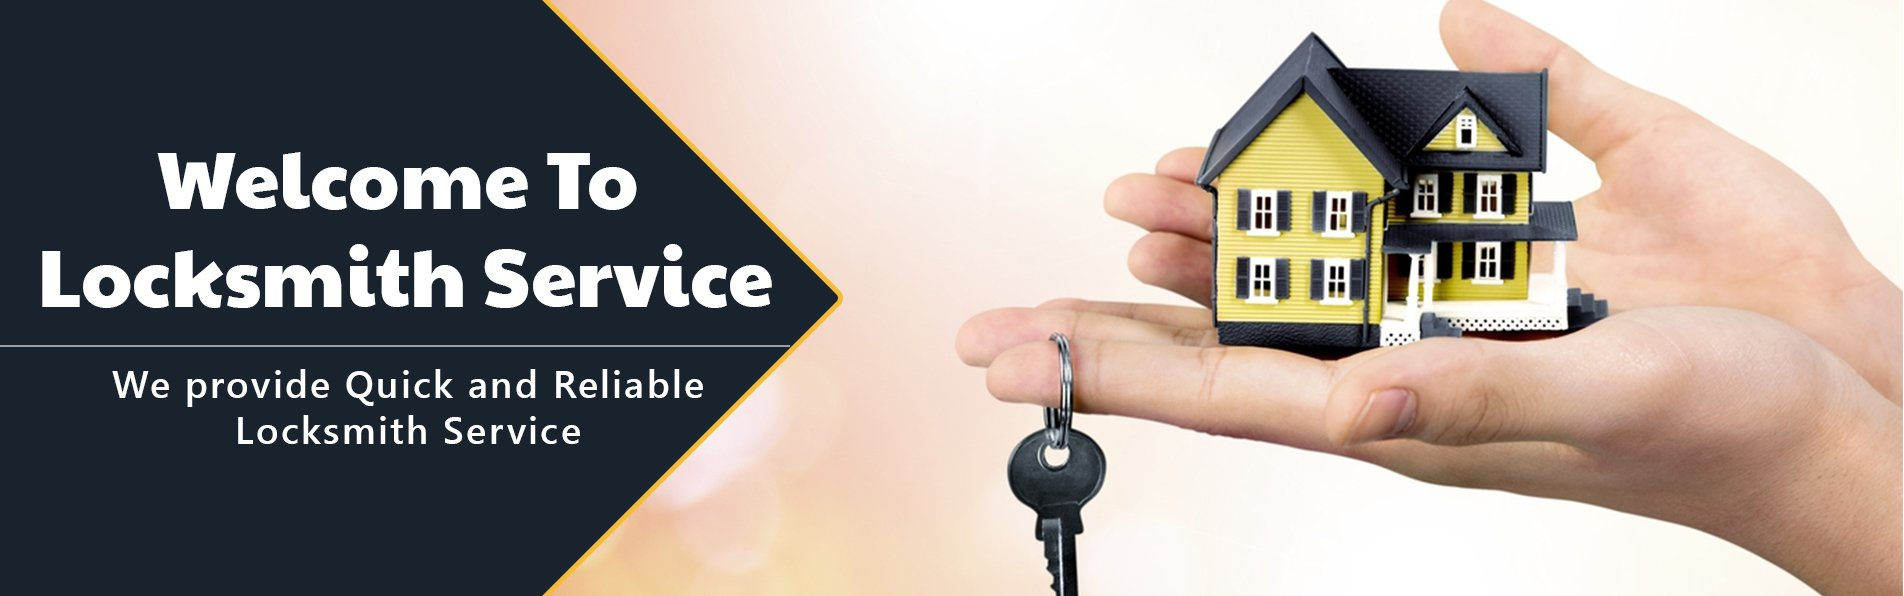 Jahnke VA Locksmith Store, Richmond, VA 804-459-8661